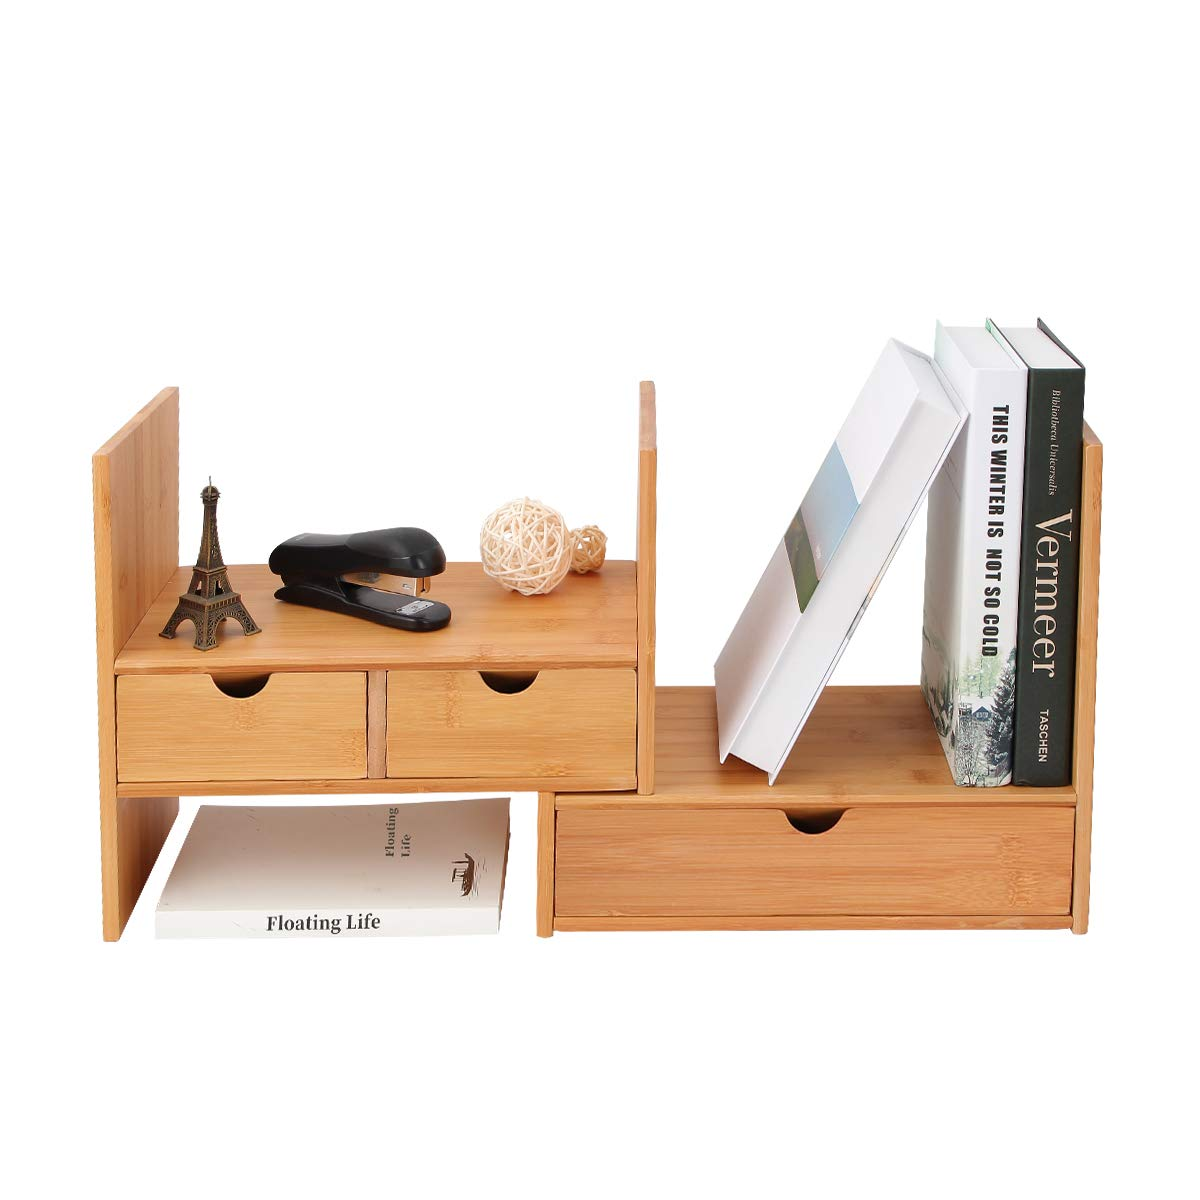 Homode Desk Organizer with Drawers, Adjustable Bamboo Wood Desktop Bookshelf Office Supplies Display Shelves (Natural) by Homode